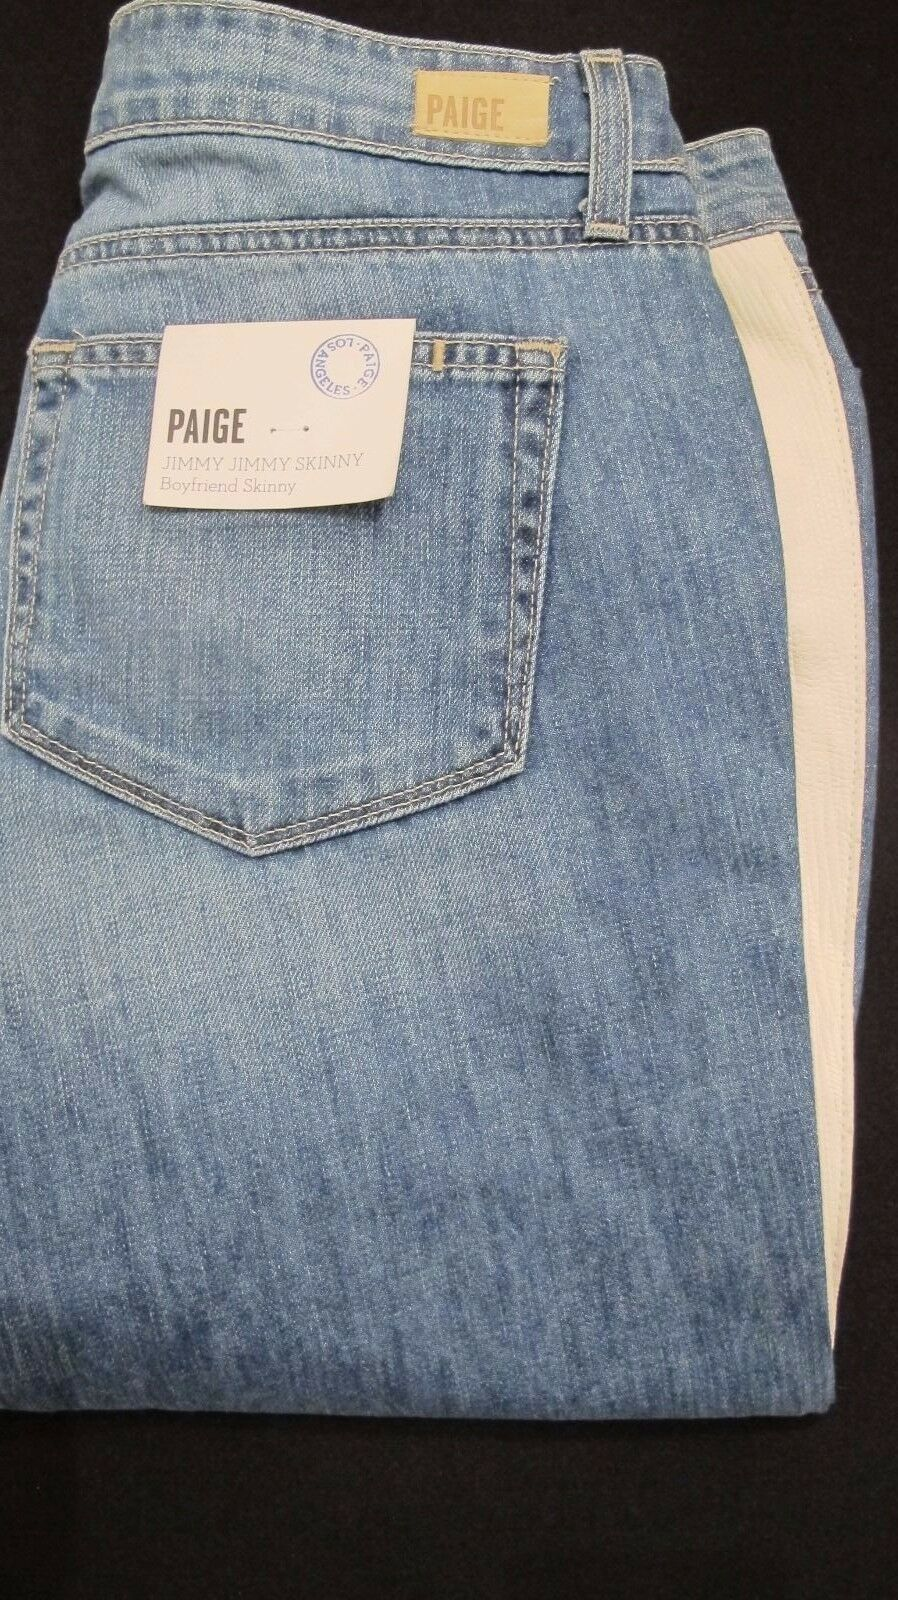 PAIGE JIMMY BOYFRIEND SKINNY MID RISE LIGHT WASH LEATHER ACCENT JEANS SZ 27 NWT.